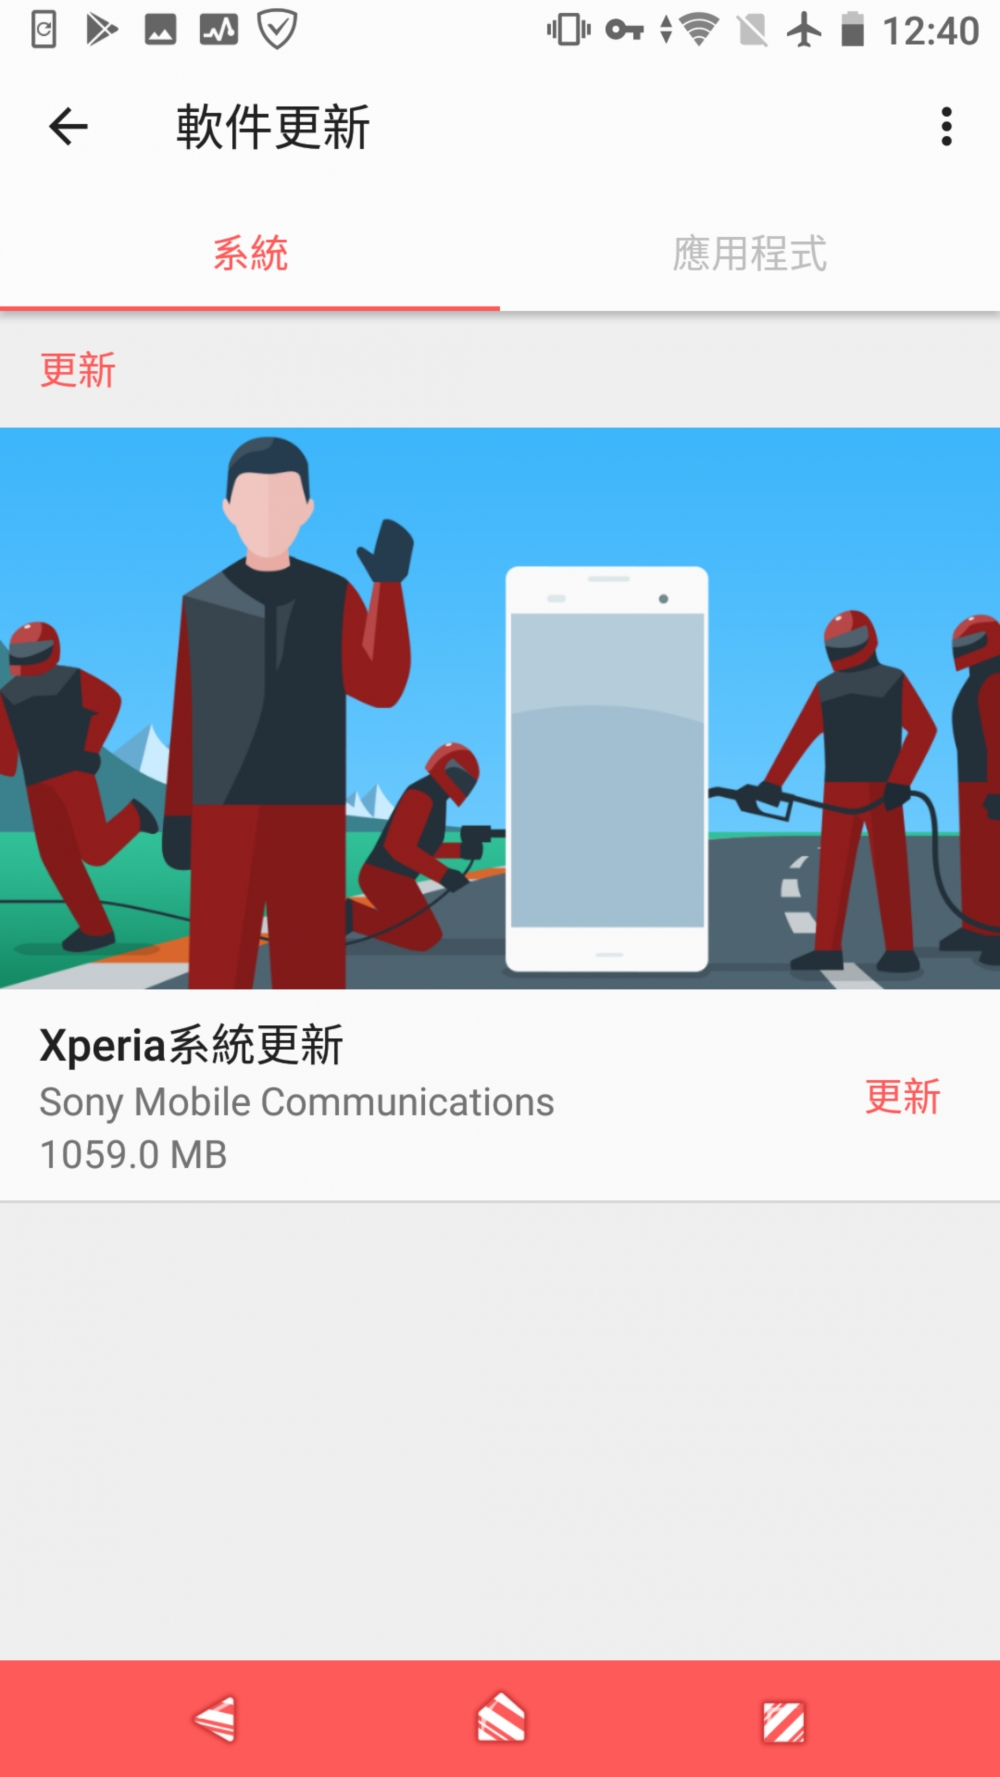 Xperia XZ2系列全綫獲得Android 9 Pie系統更新。